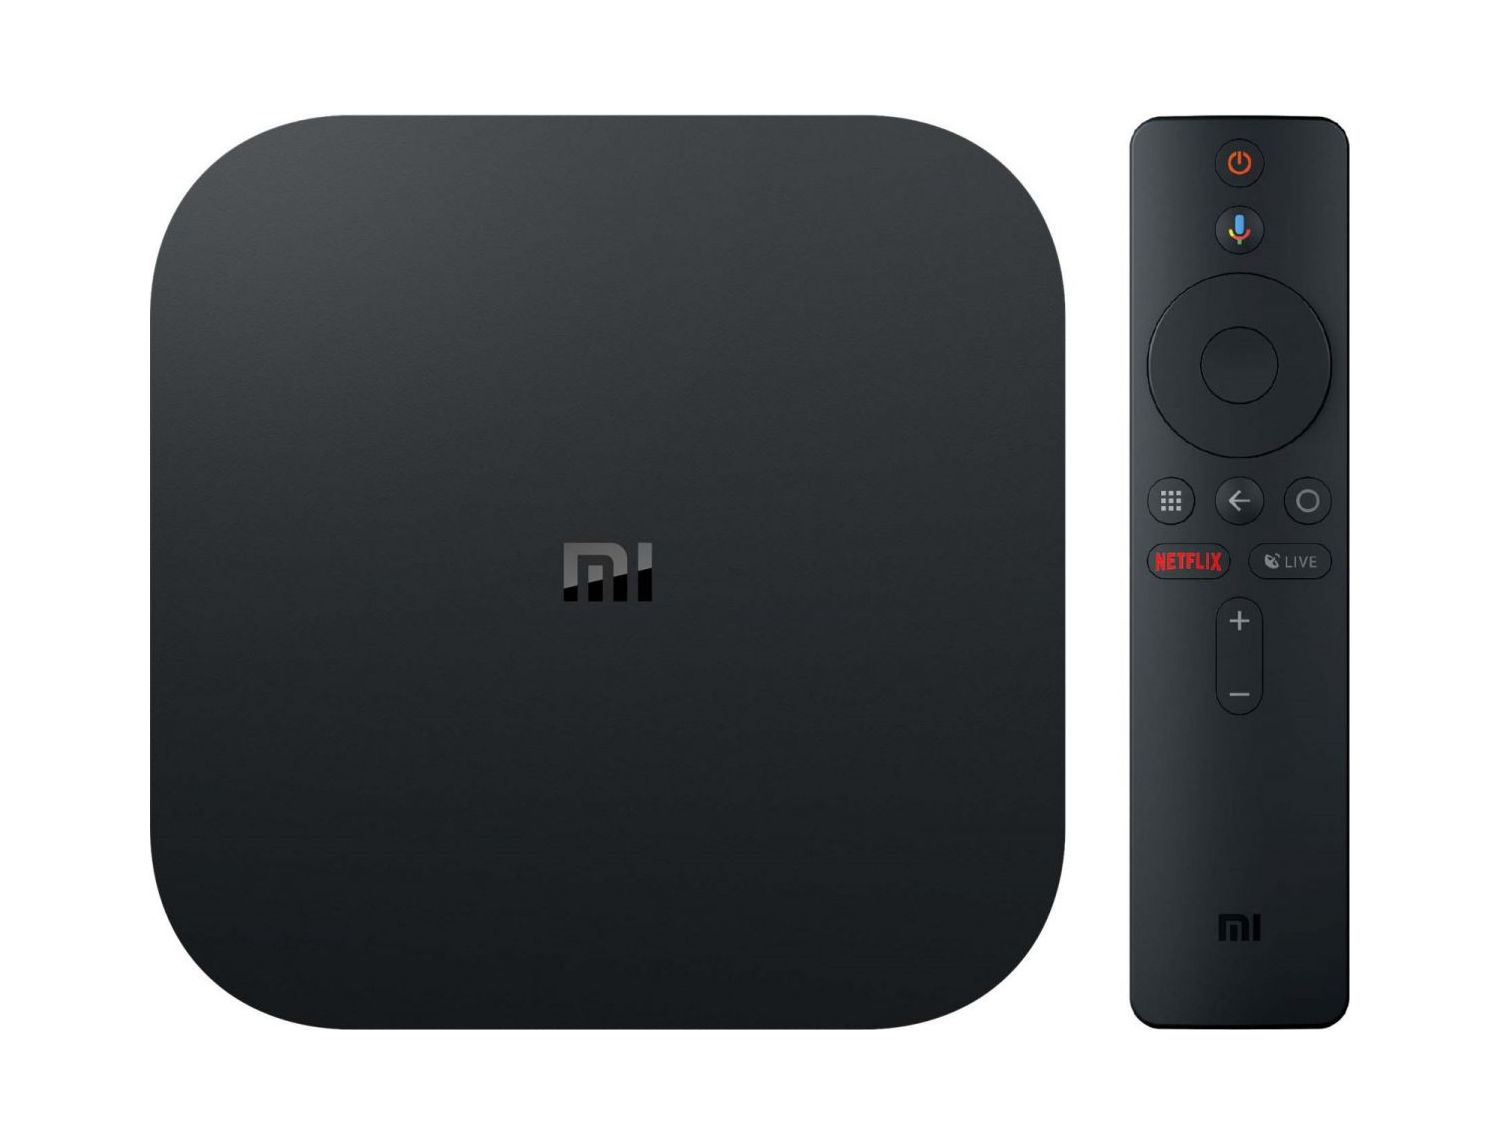 Фото - Медиаплеер Xiaomi Mi Box S (International Version) медиаплеер invin km5 1gb 8gb